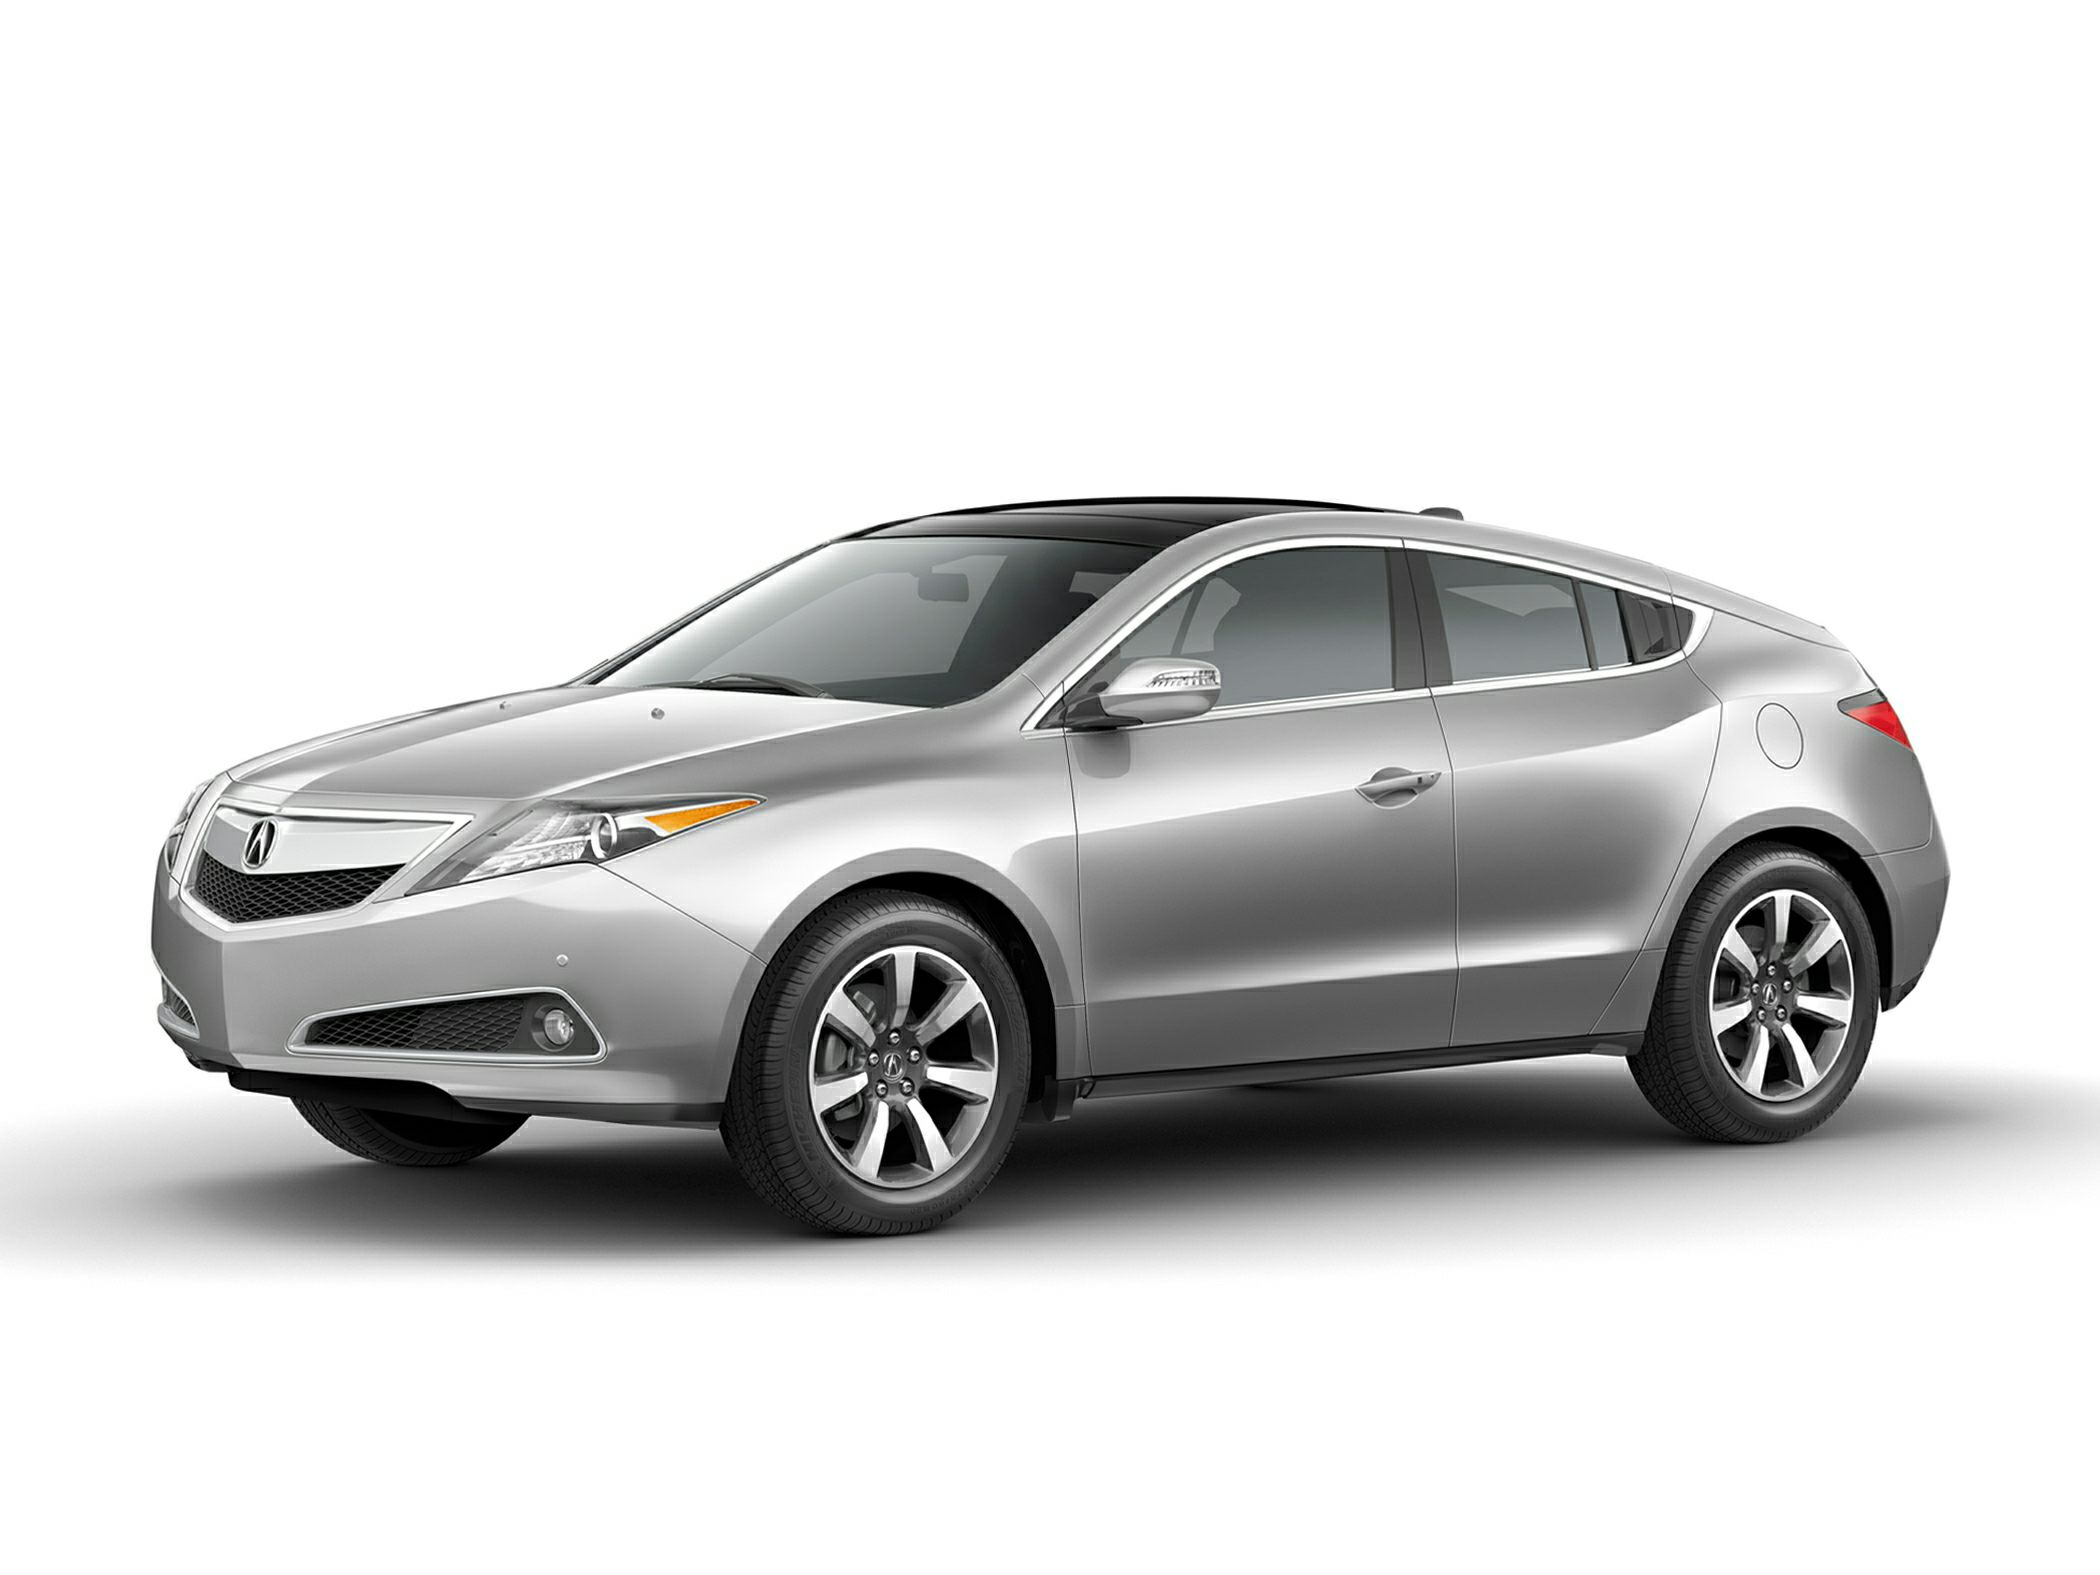 Acura  Review on Find Your Acura Zdx   Acura Zdx For Sale   Carsdirect